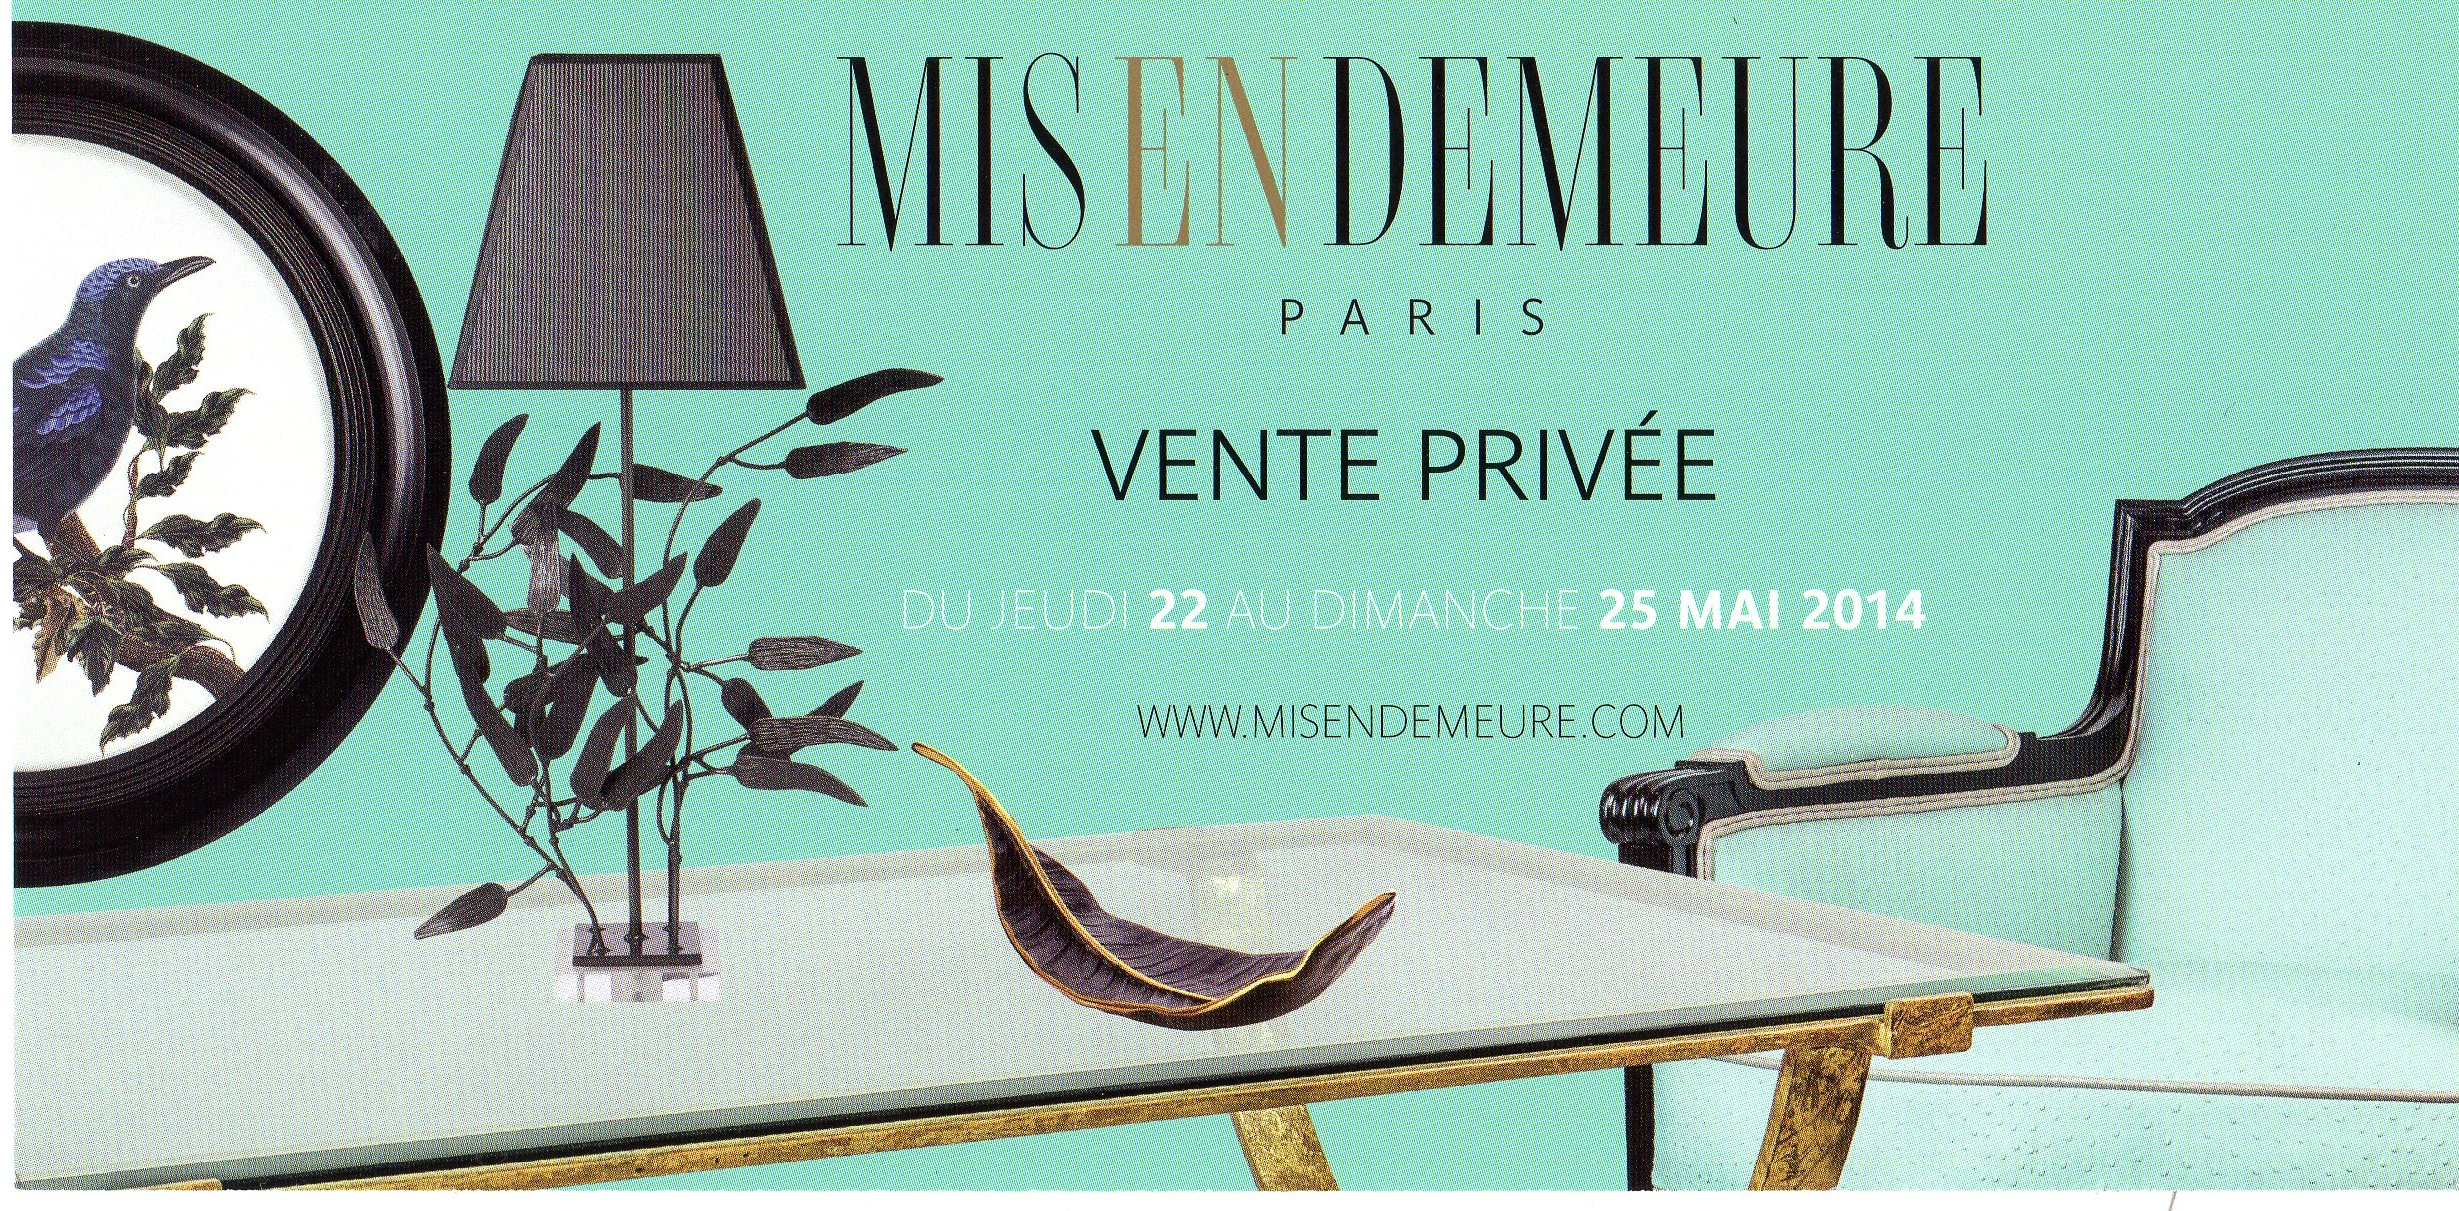 Vente priv e mis en demeure archives le blog d co de mlc - Vente privee saint denis ...